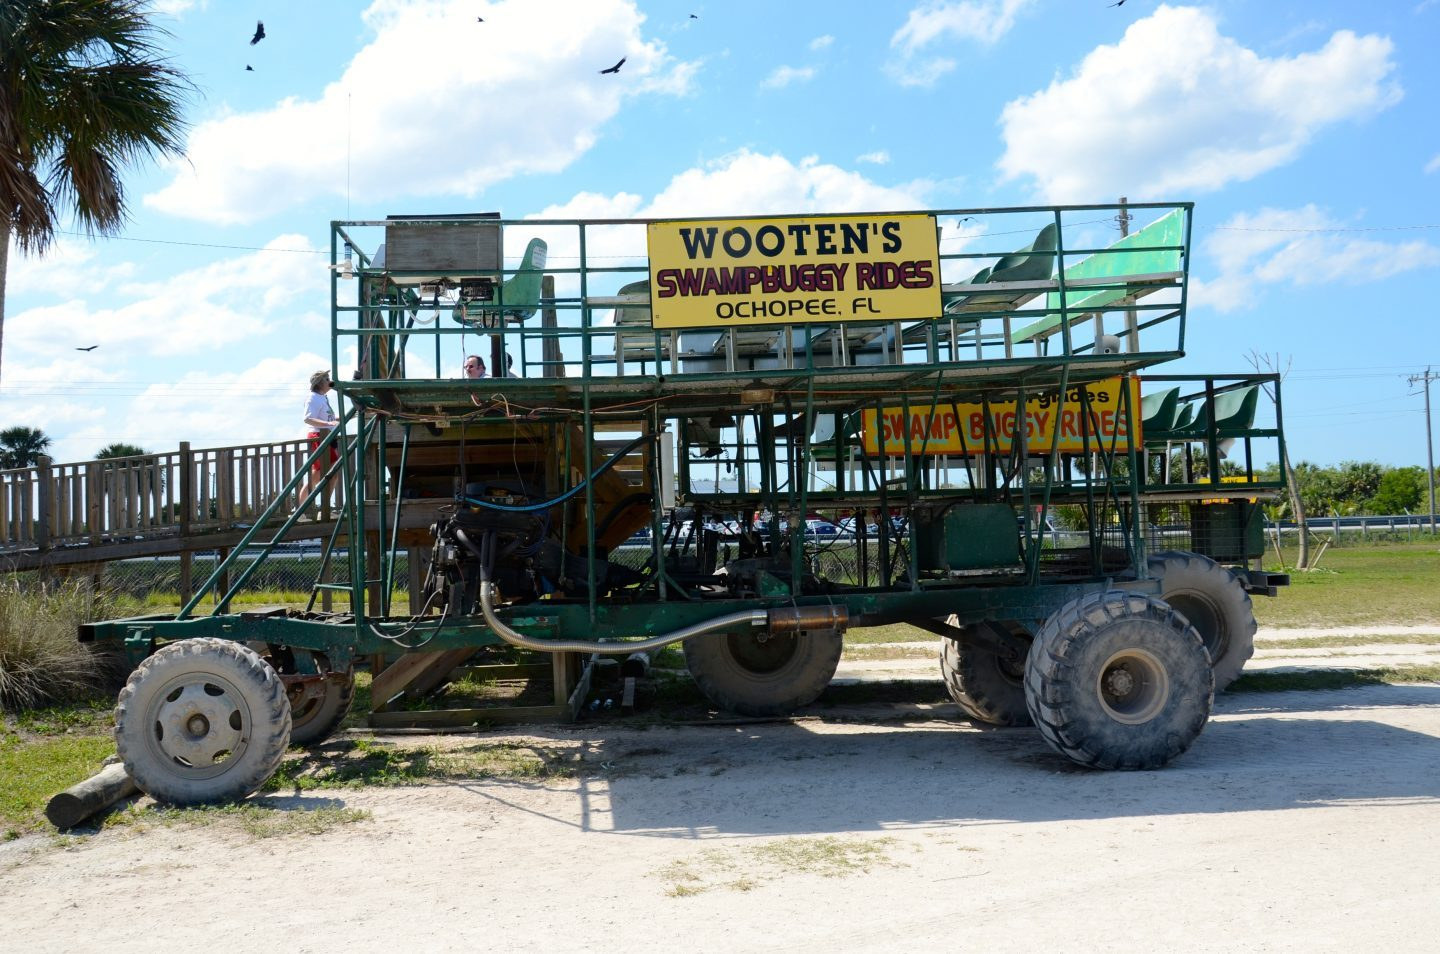 Taking a buggy ride in the Everglades at Wootens.